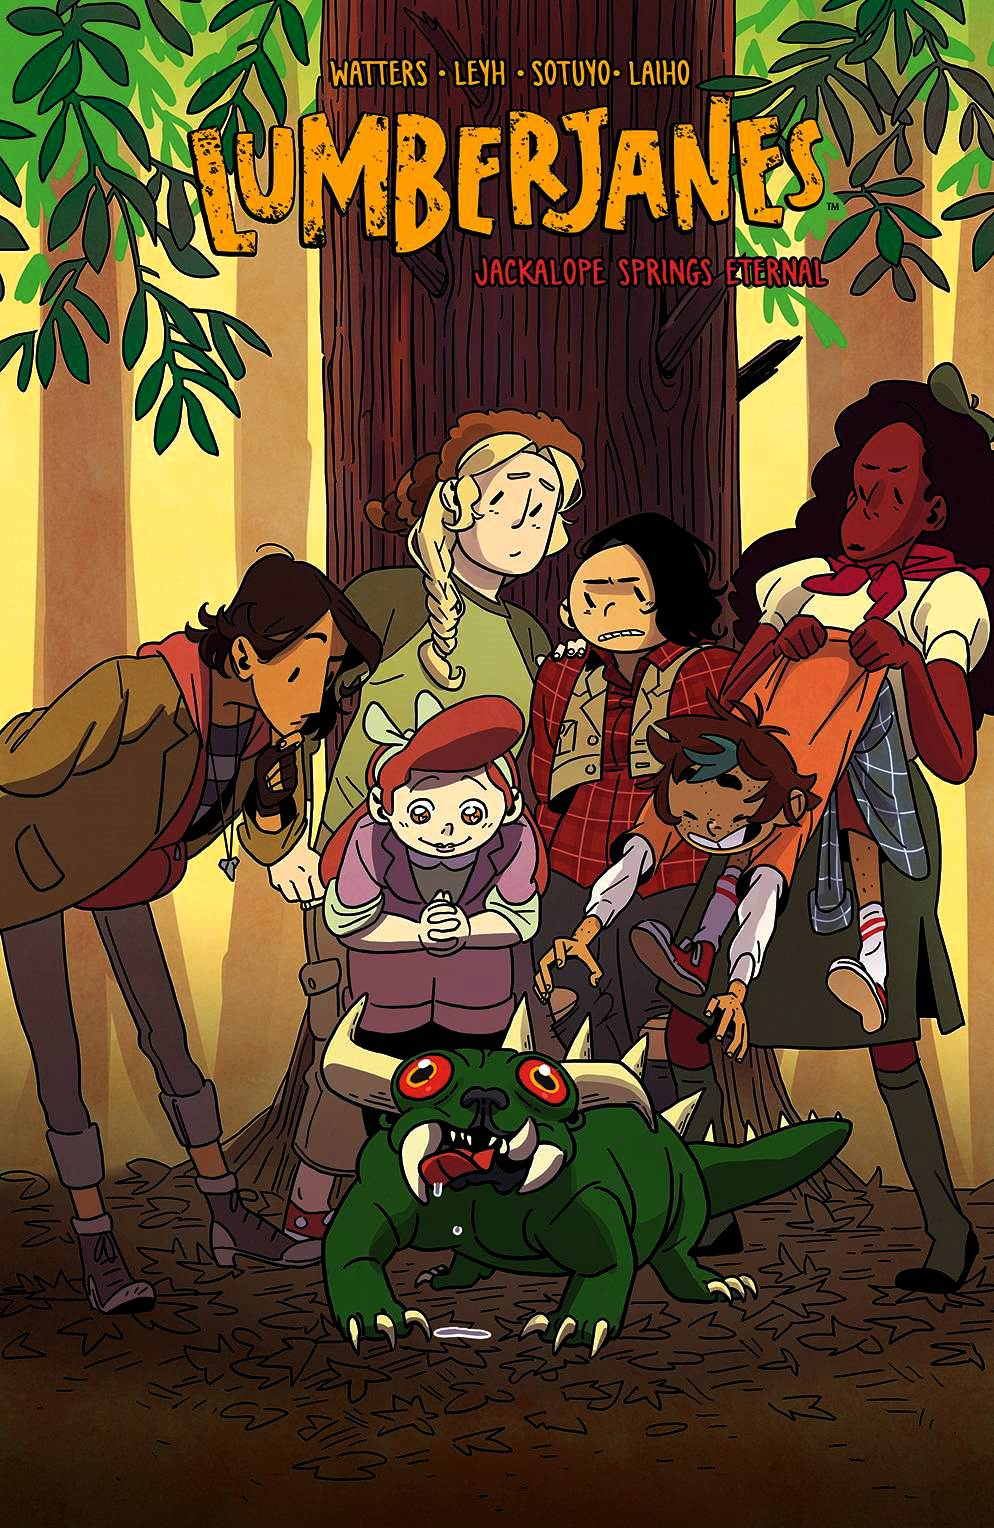 Lumberjanes Volume 12: Jackalope Springs Eternal